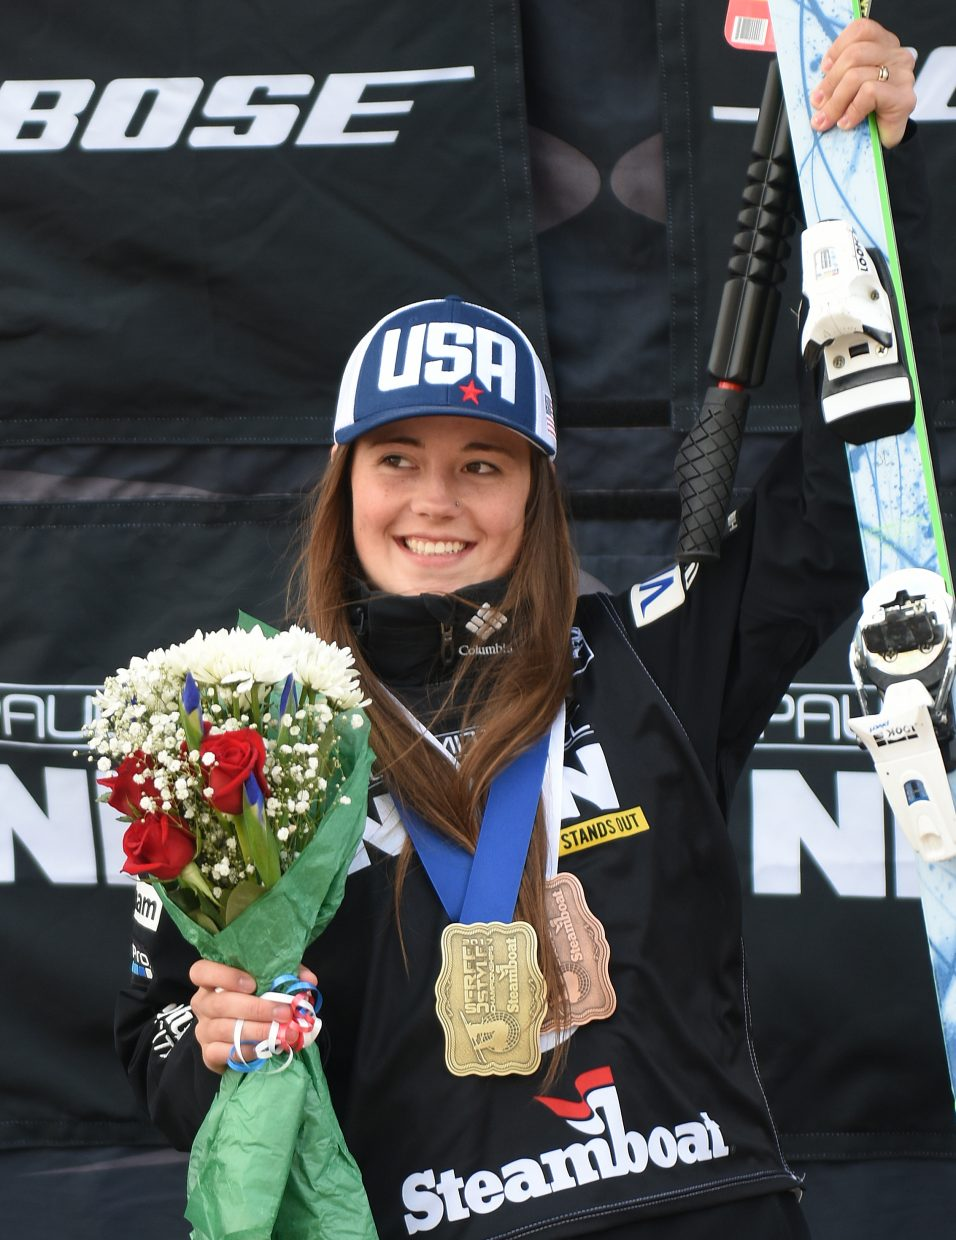 Steamboat Springs skier Jaelin Kauf celebrates after collecting two national championship medals at Steamboat Ski Area during the U.S. Freestyle National Championships. She was third on Friday in moguls, then came back to win dual moguls on Saturday.